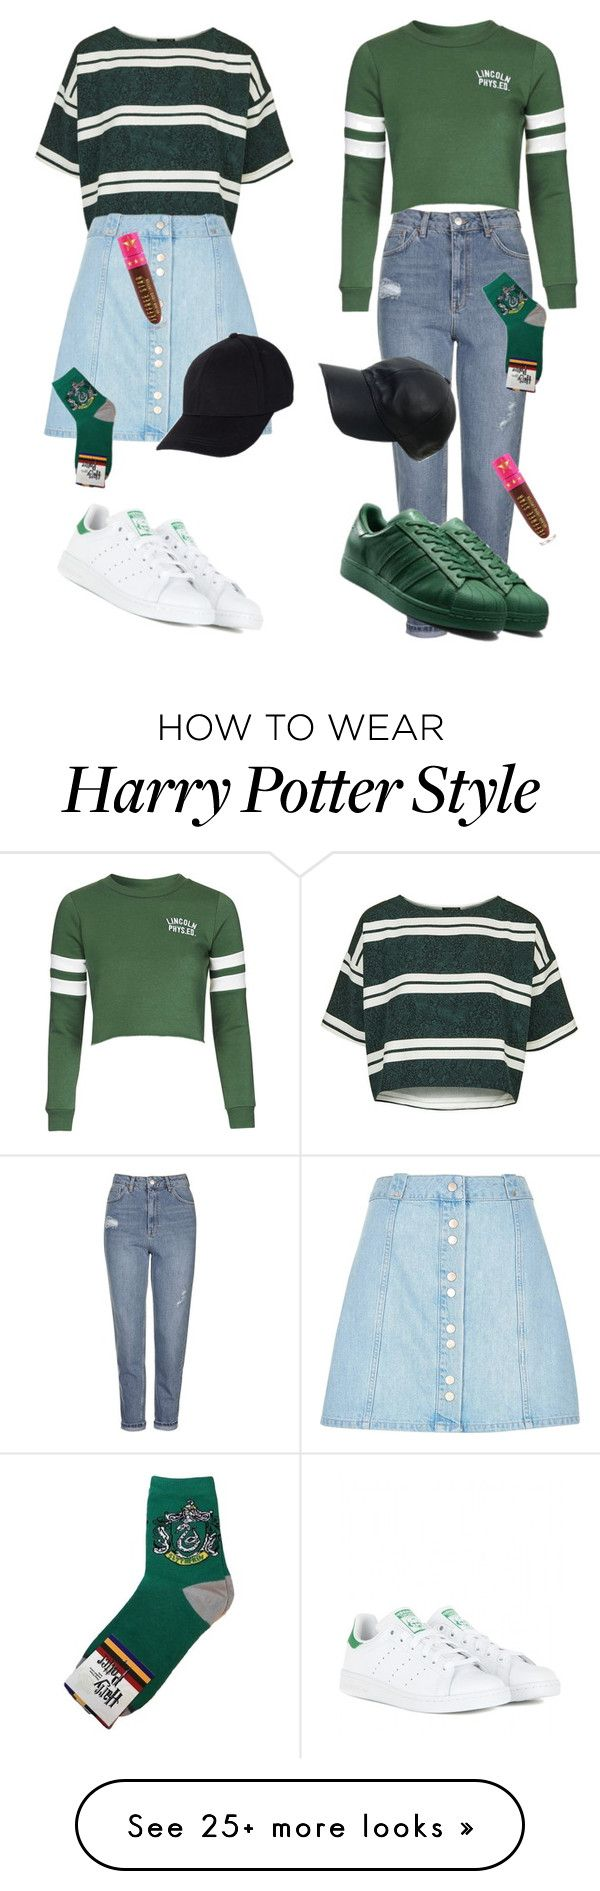 """Go Slytherin"" by pillowtallk on Polyvore featuring Topshop, adidas, River Island, Vianel and Jeffree Star"